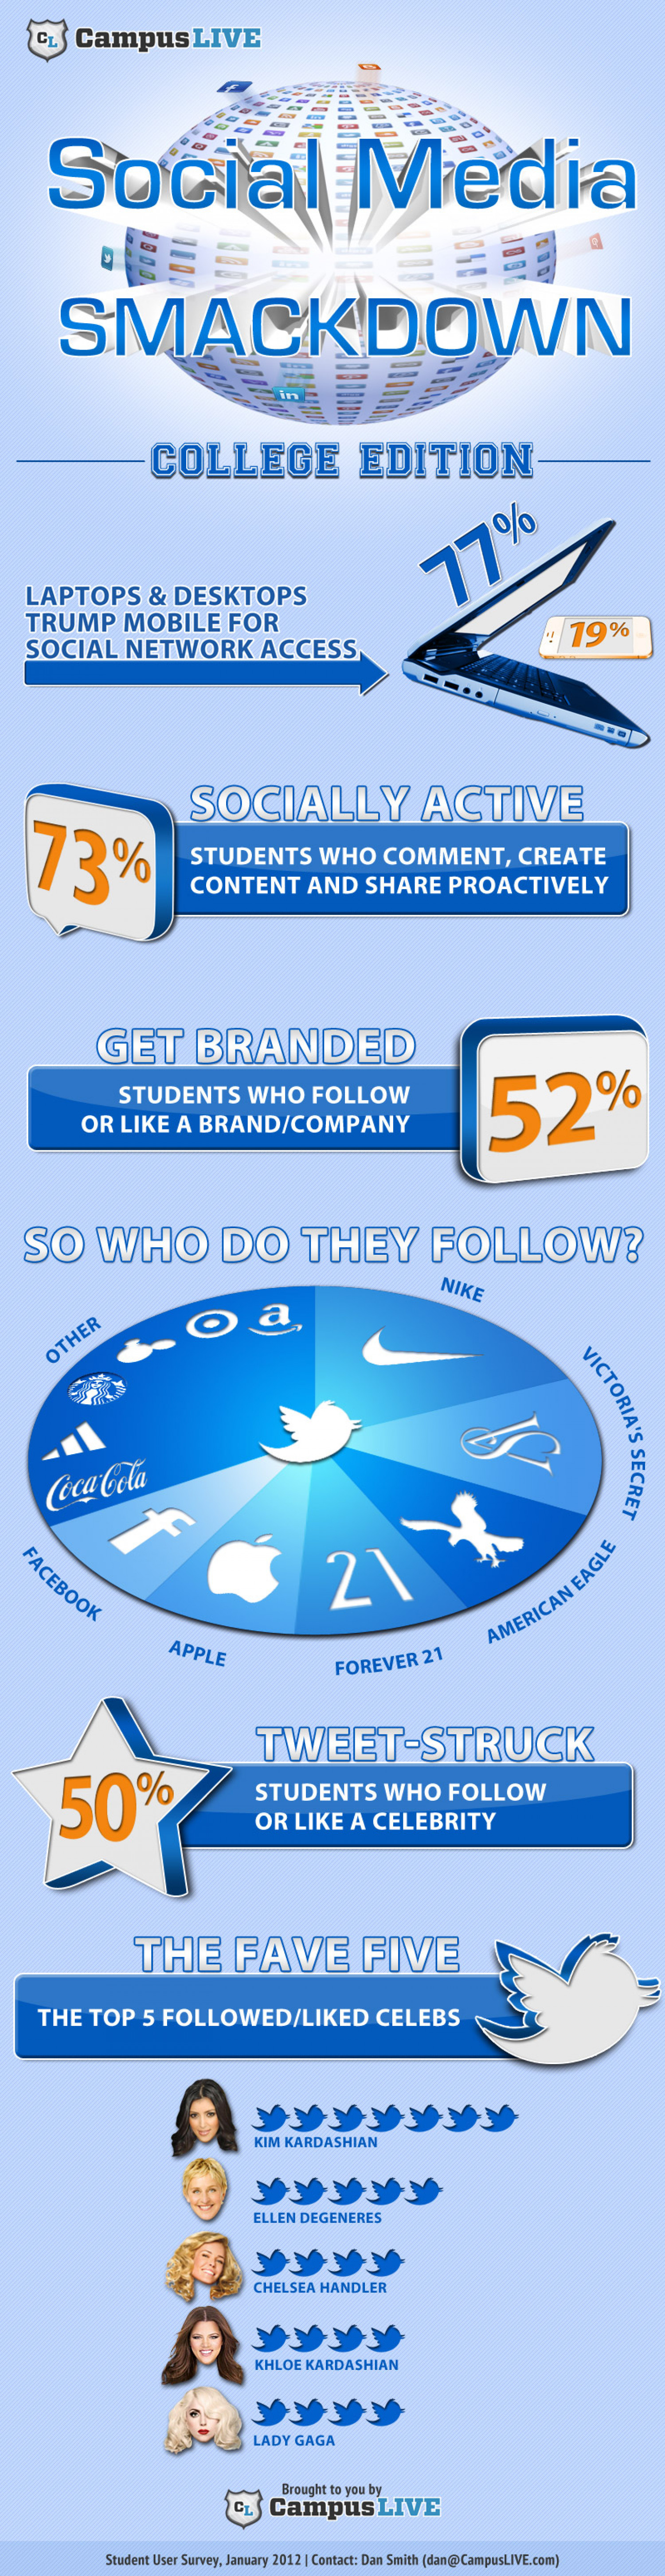 Social Media Smackdown -College Edition- Infographic